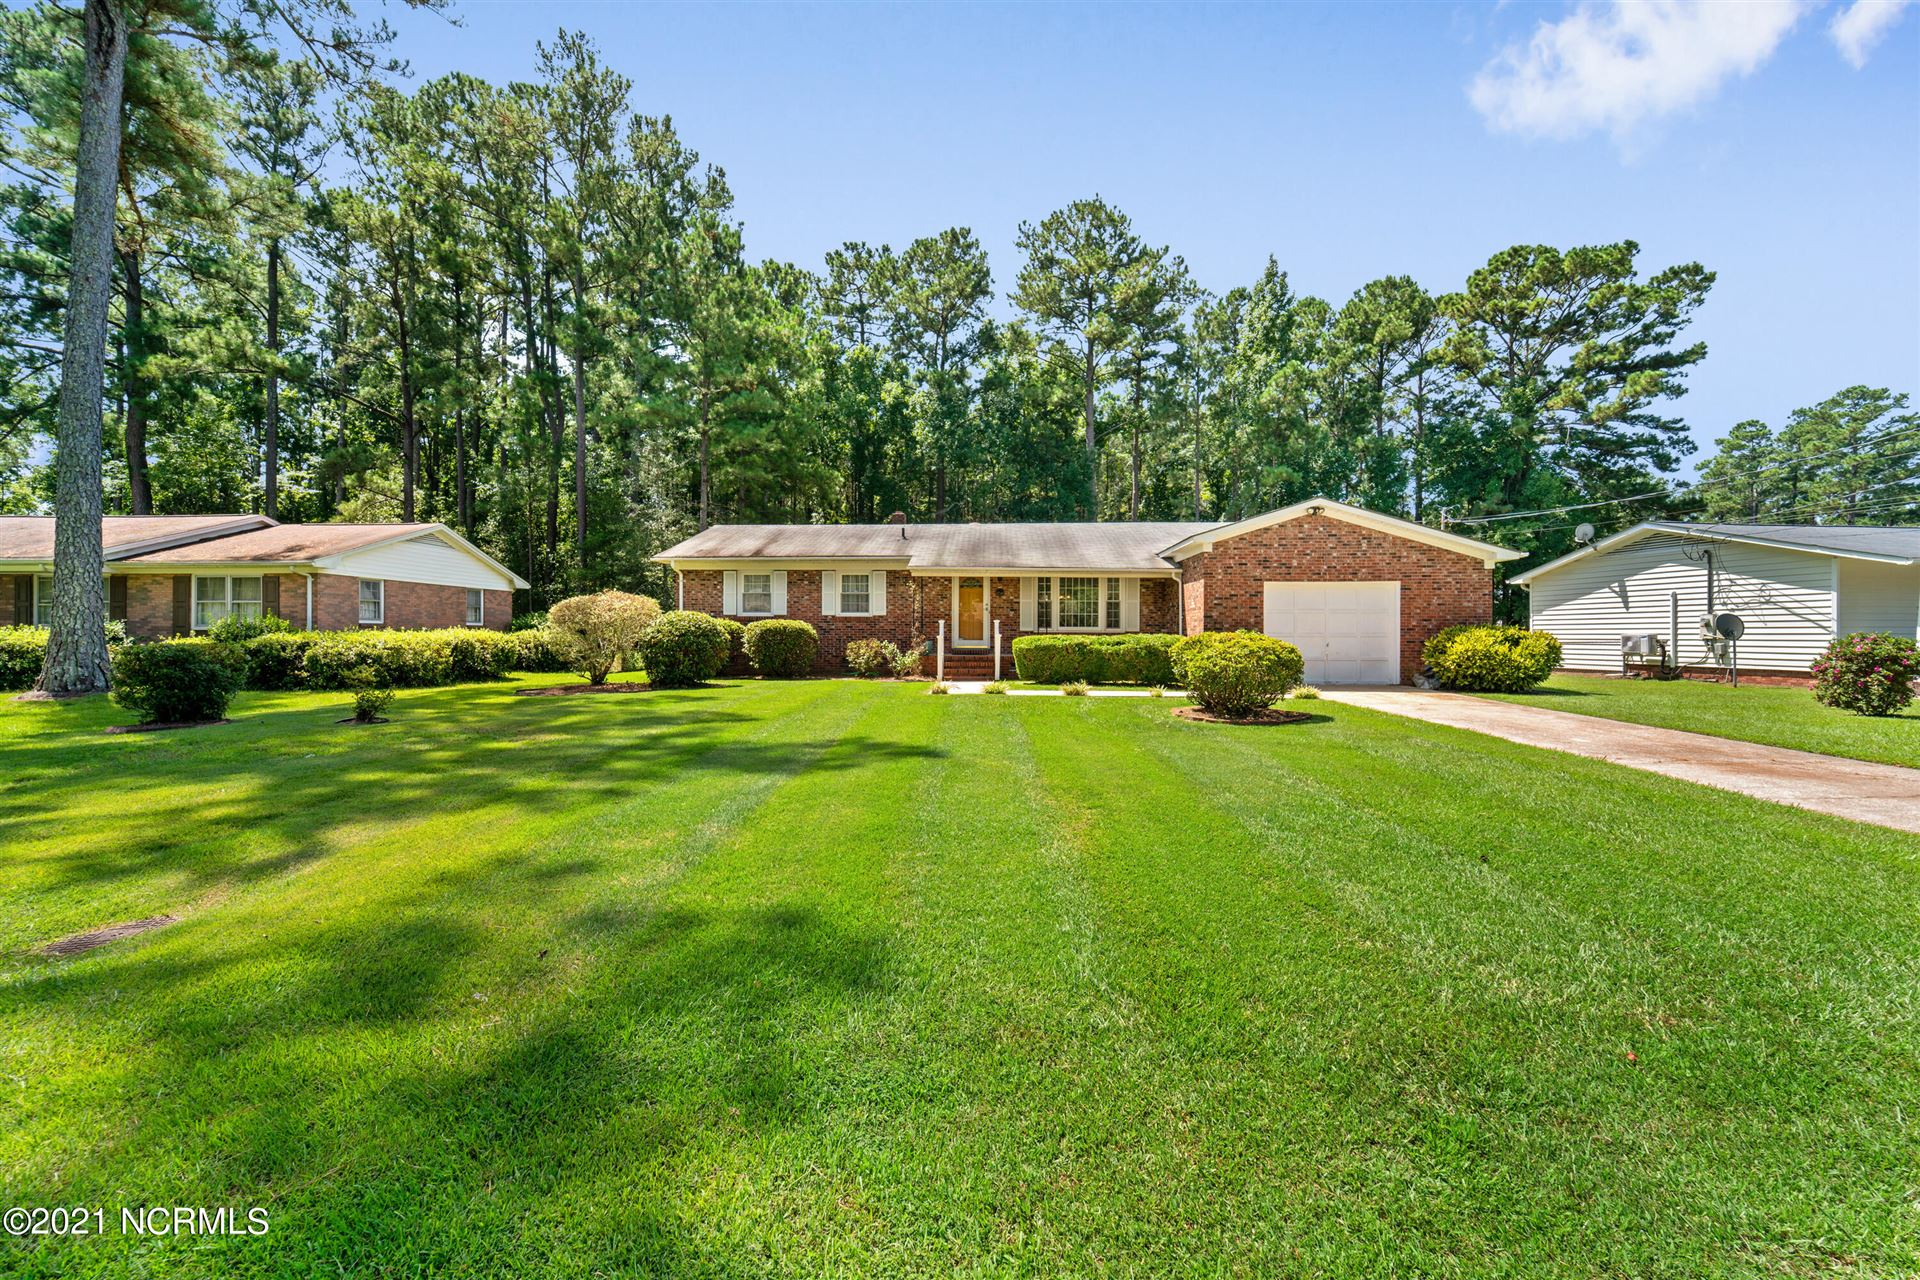 Photo of 207 Pineview Road, Jacksonville, NC 28546 (MLS # 100289226)